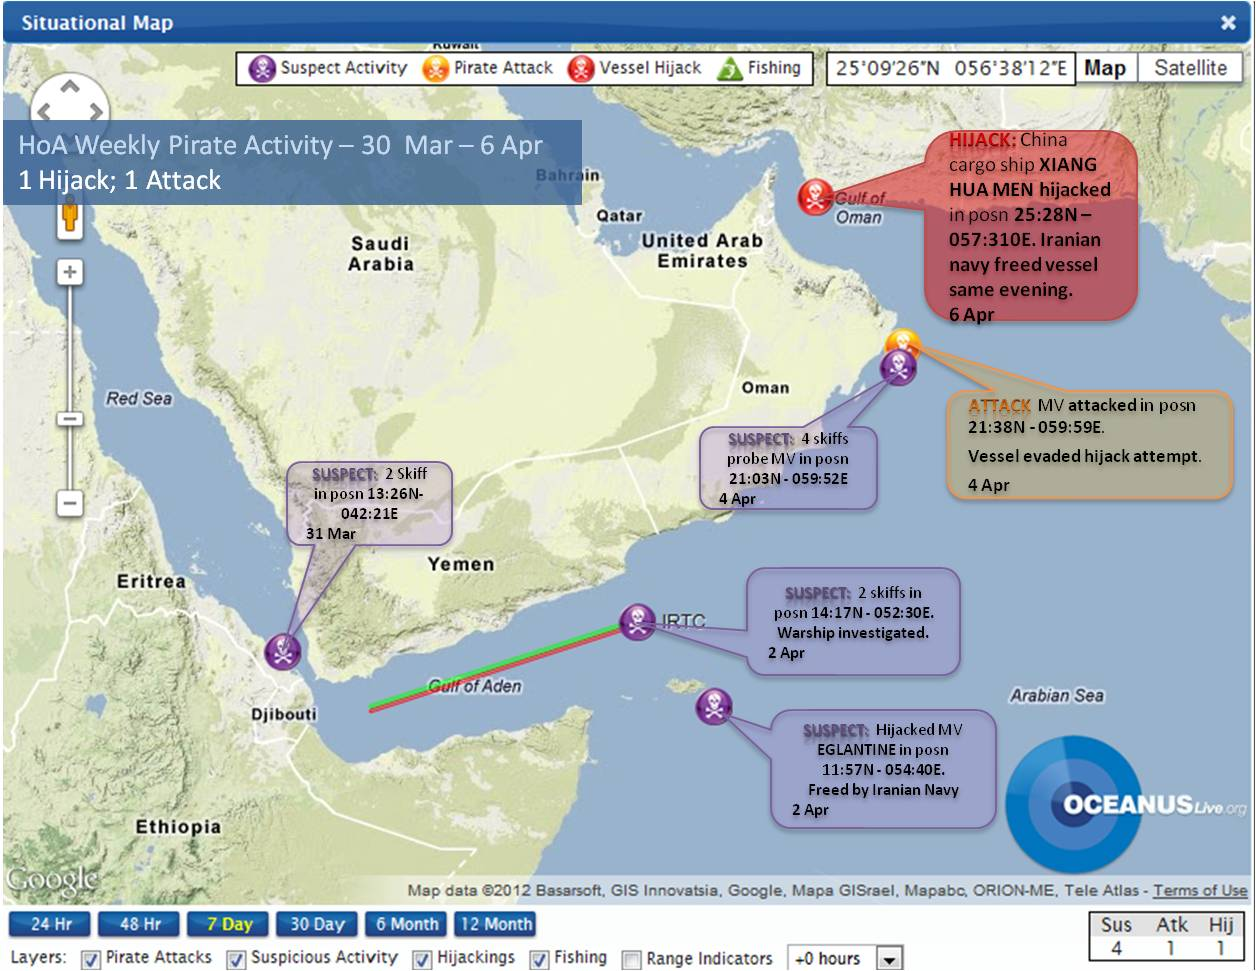 Weekly Piracy Activity Map 30 Mar - 6 Apr